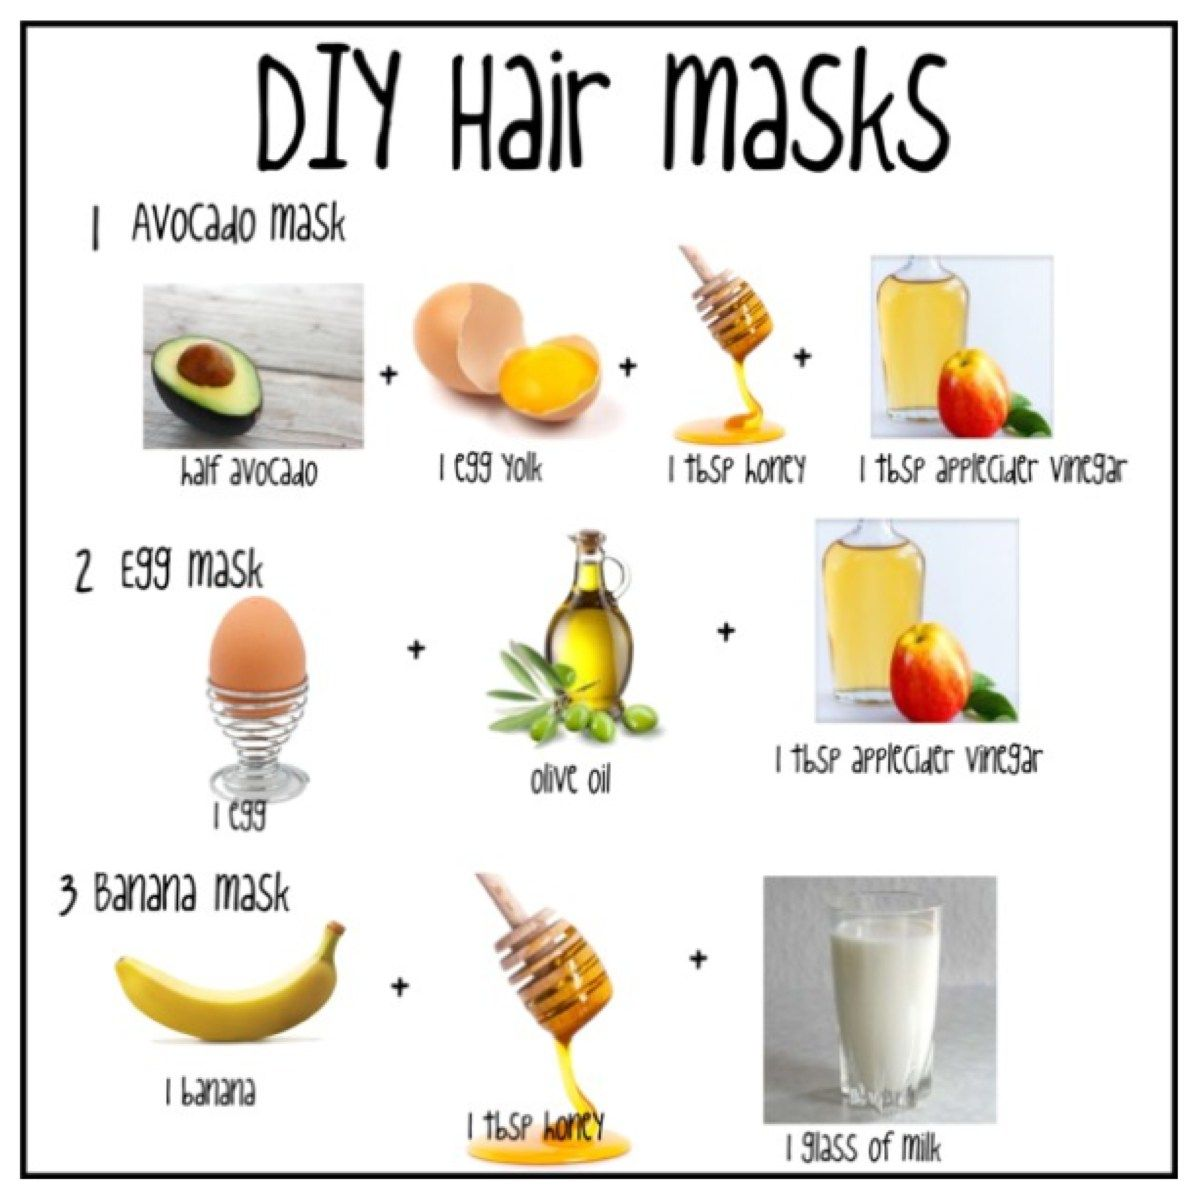 16 hair Mask diy ideas